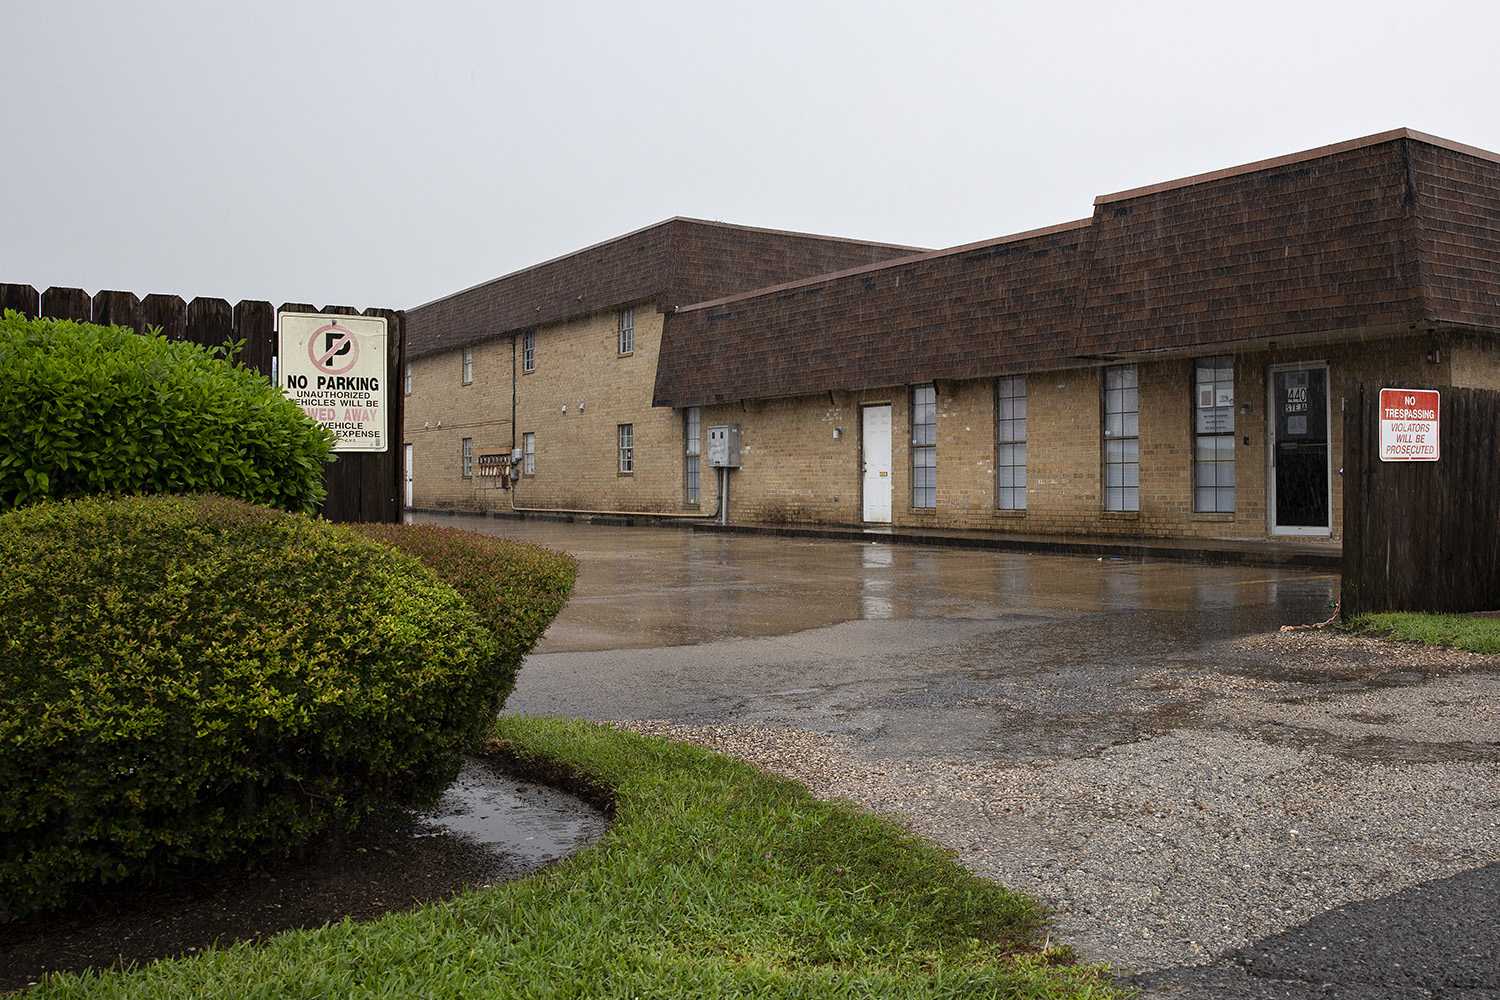 The Texas abortion provider Whole Woman's Health ran a clinic in Beaumont until 2014. It was the only place to get an abortion between Houston and Baton Rouge.